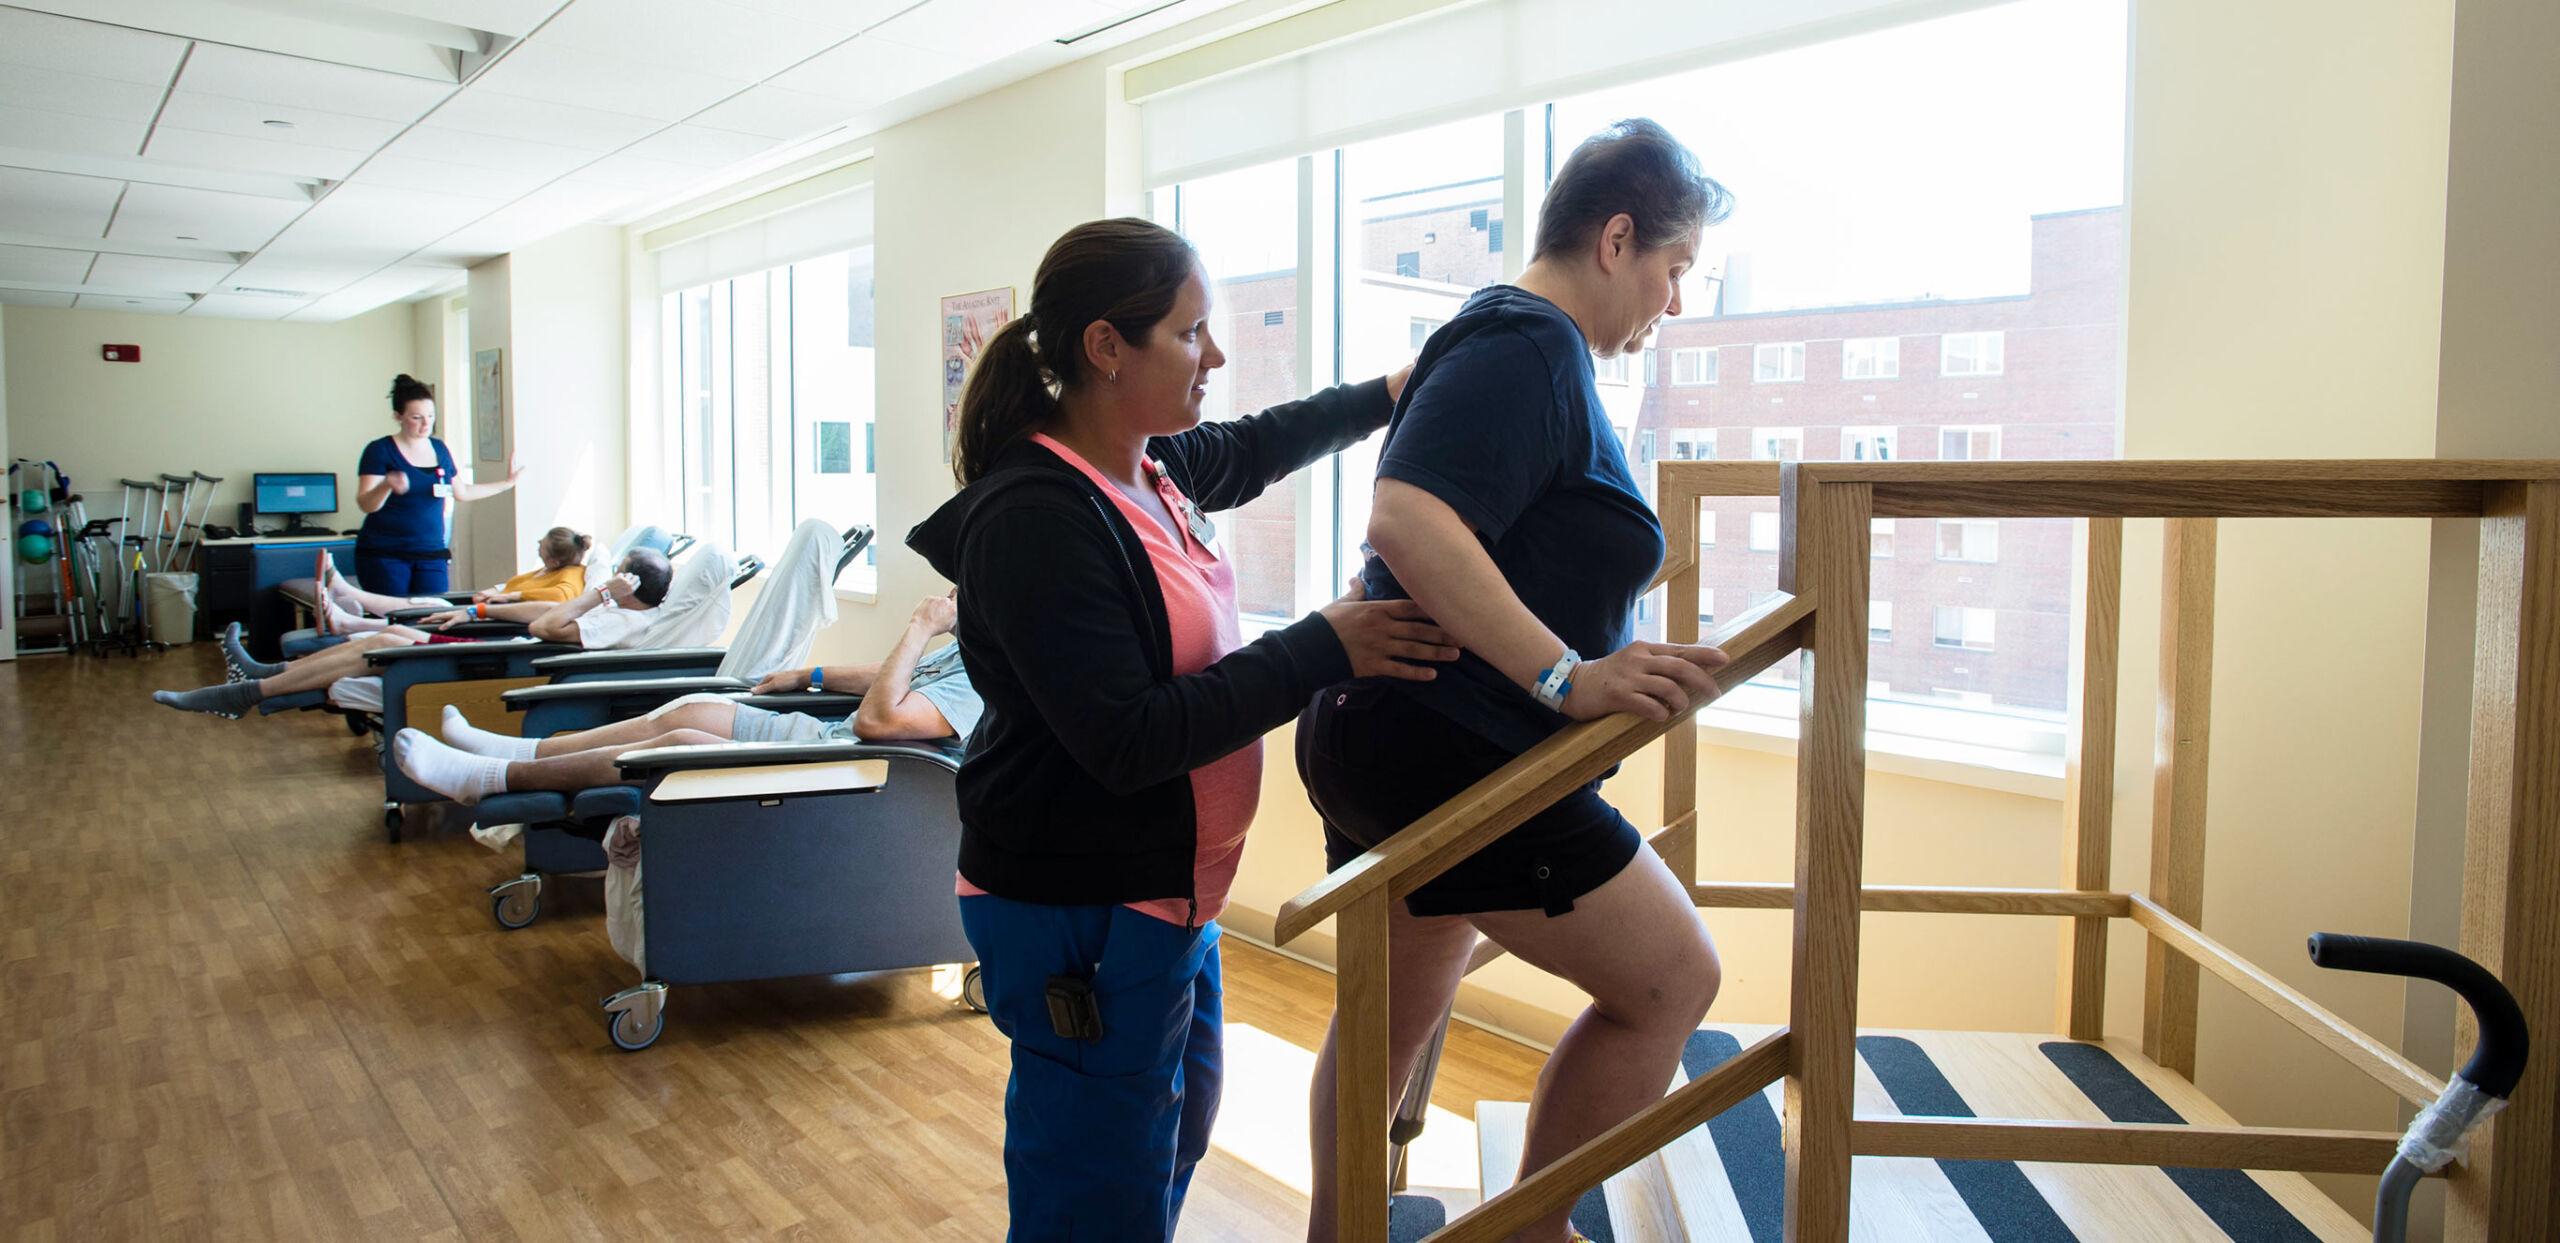 Provider helps a patient practice walking up stairs at the Joint Replacement Center at Cooley Dickinson Hospital, Northampton, MA 01060